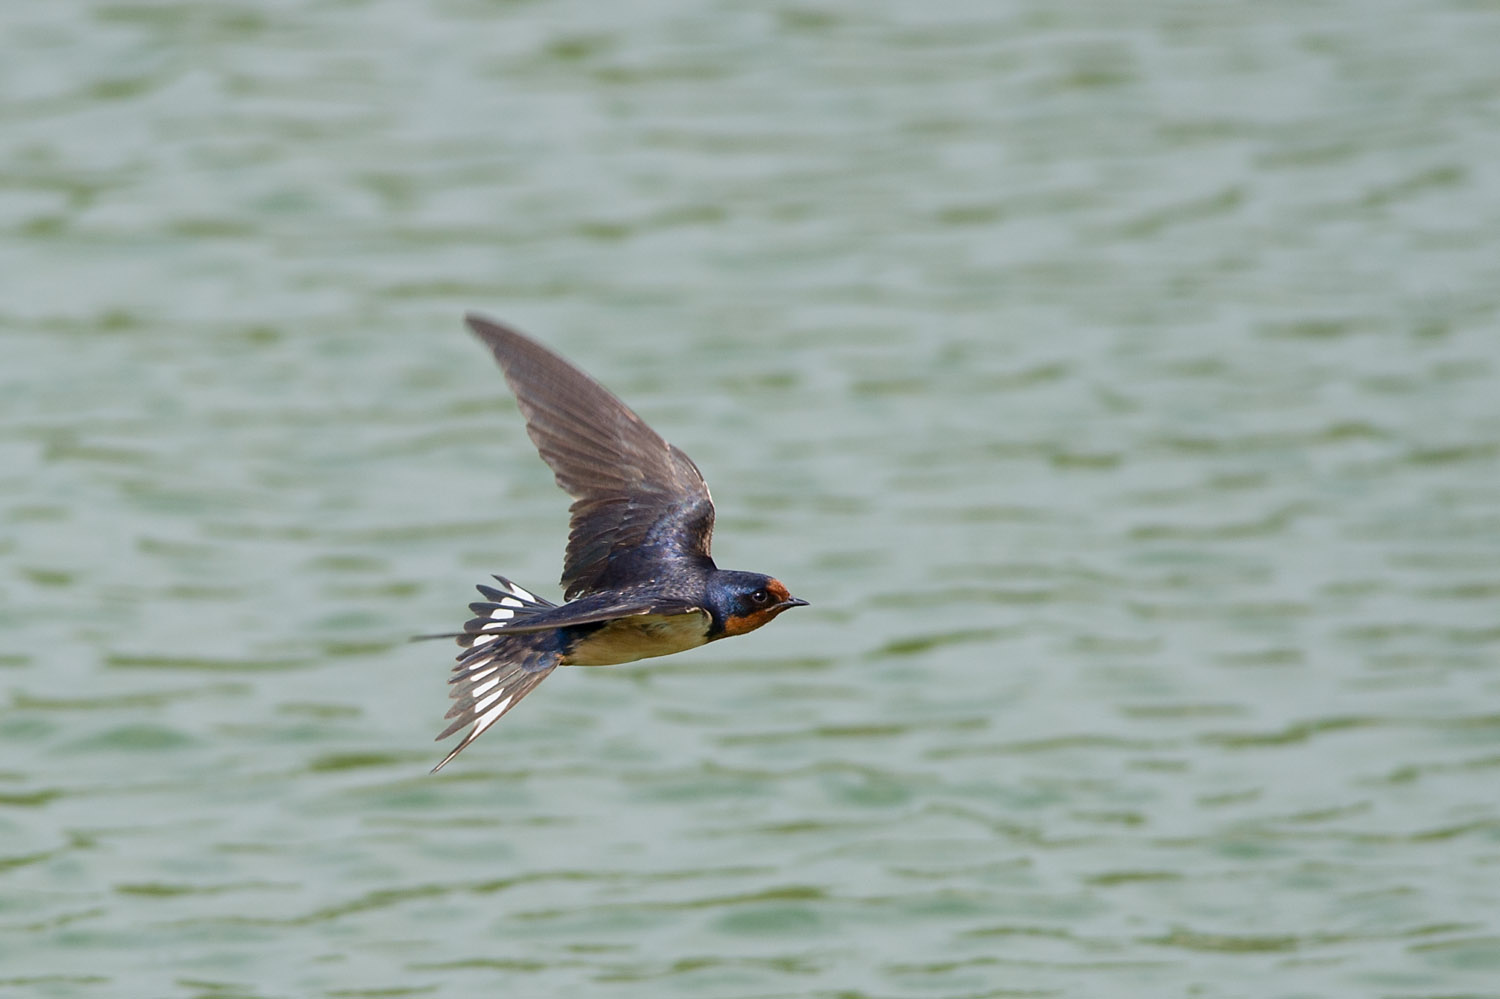 One of the most acrobatic fliers I've ever seen, this Barn Swallow is hunting for flying insects over the water at John Heinz National Wildlife Refuge in Philadelphia, PA  .